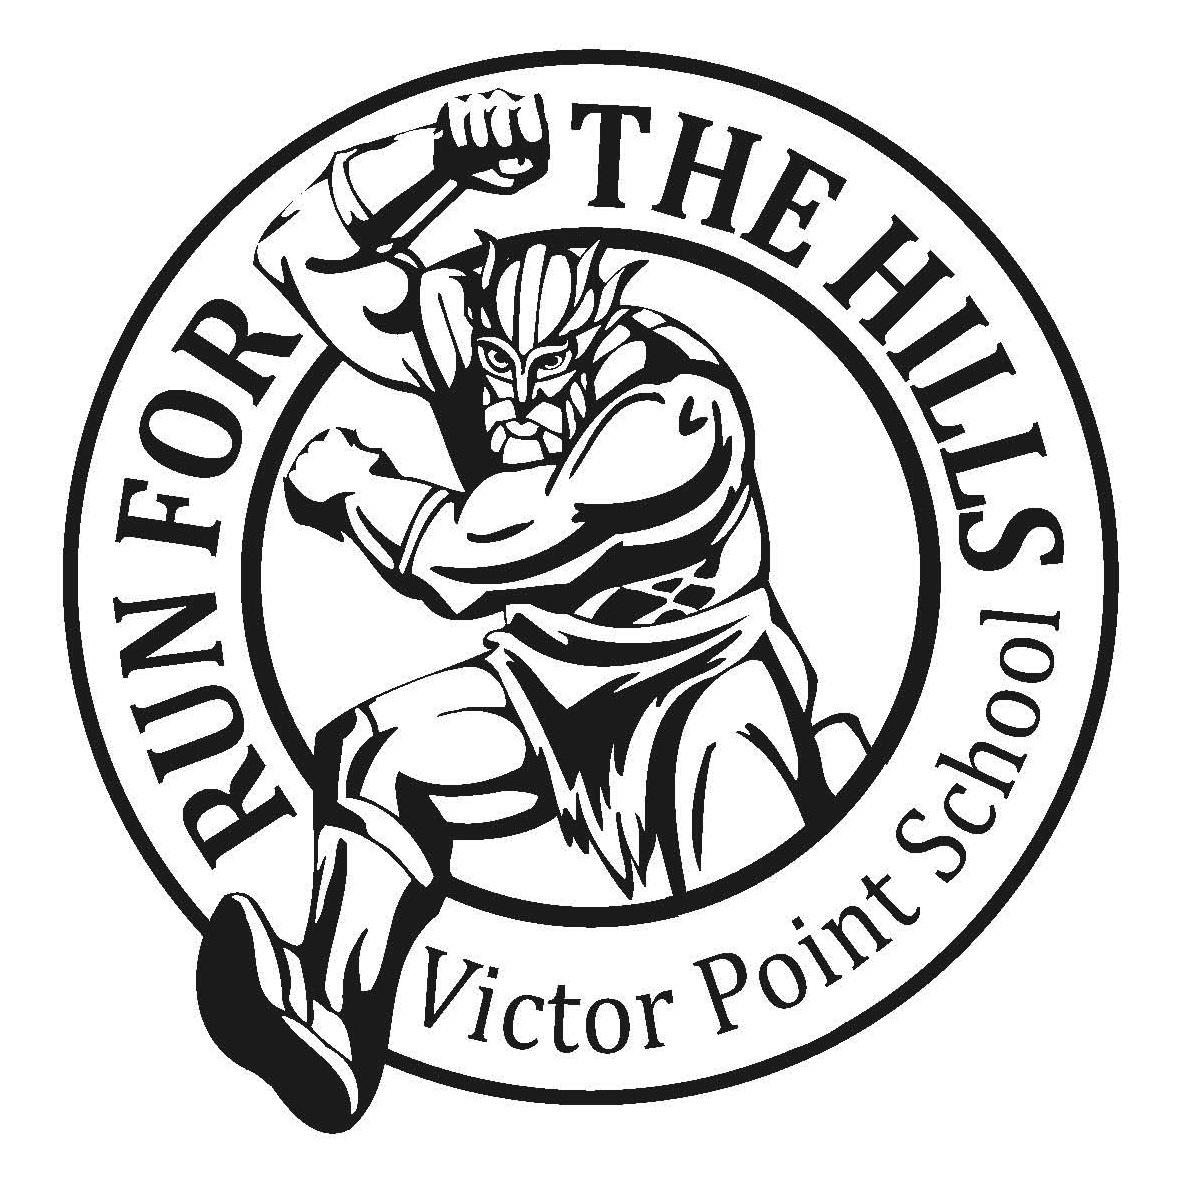 Victor Point School S Run For The Hills